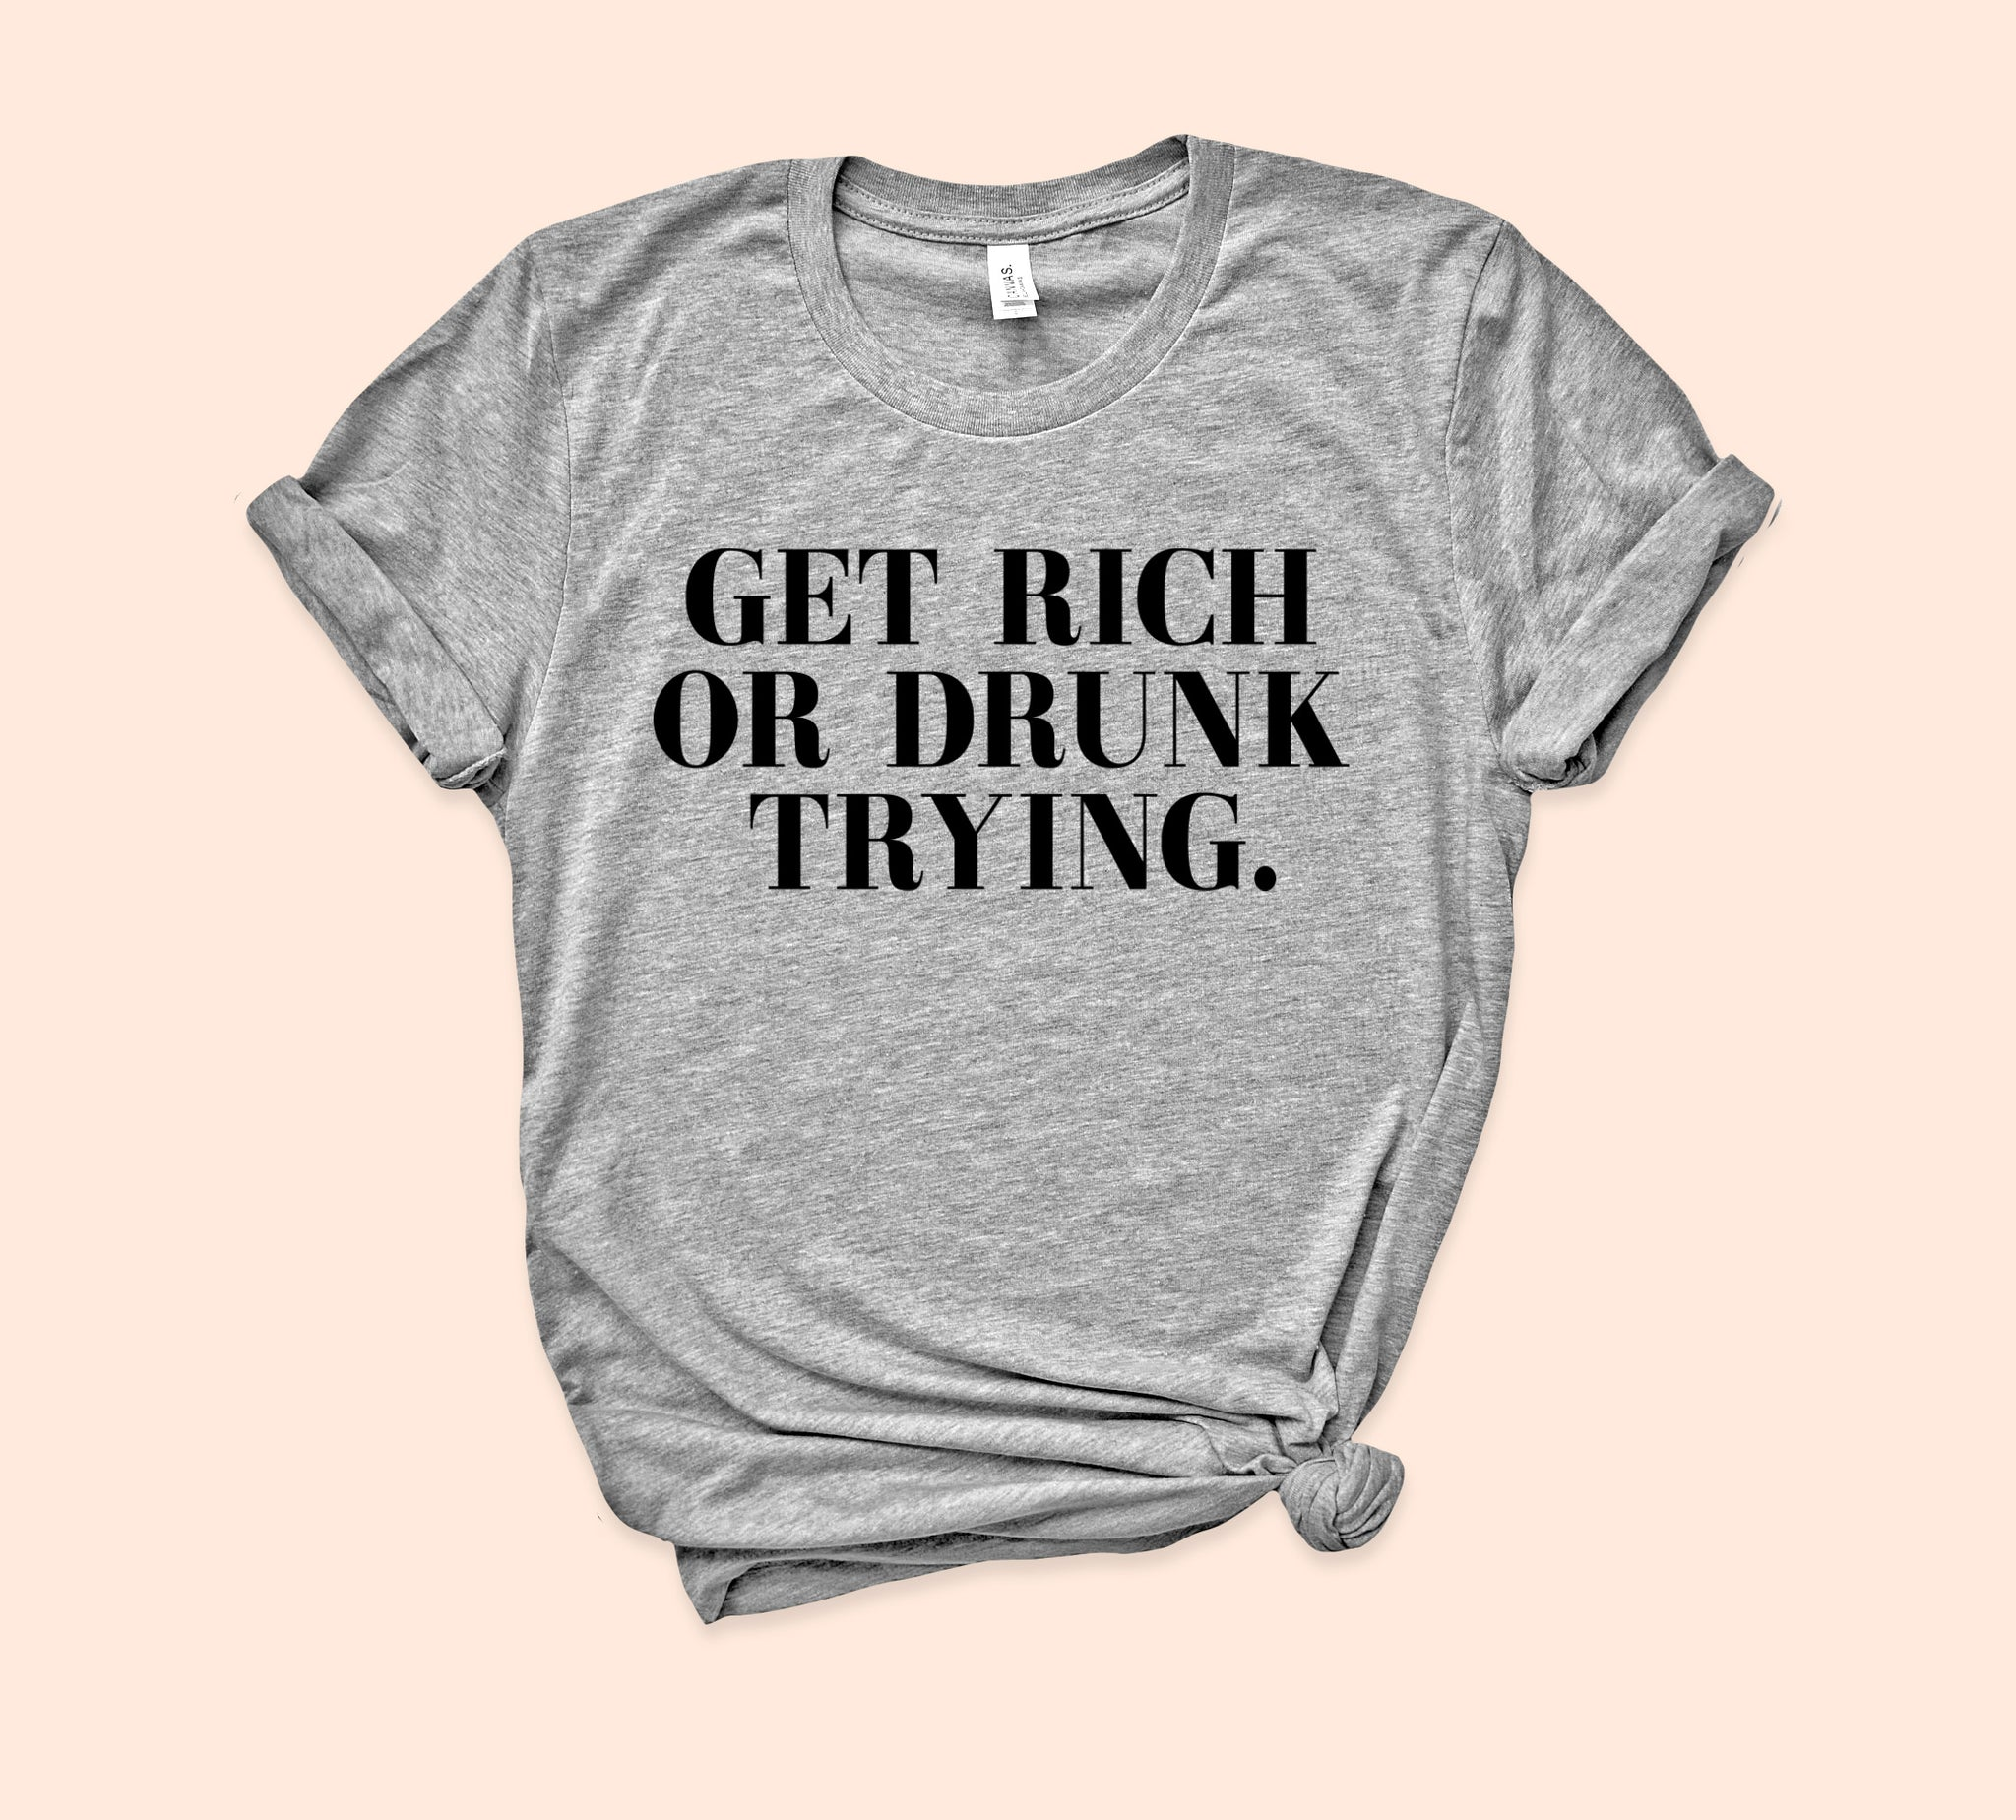 Get Rich Or Drunk Trying Shirt